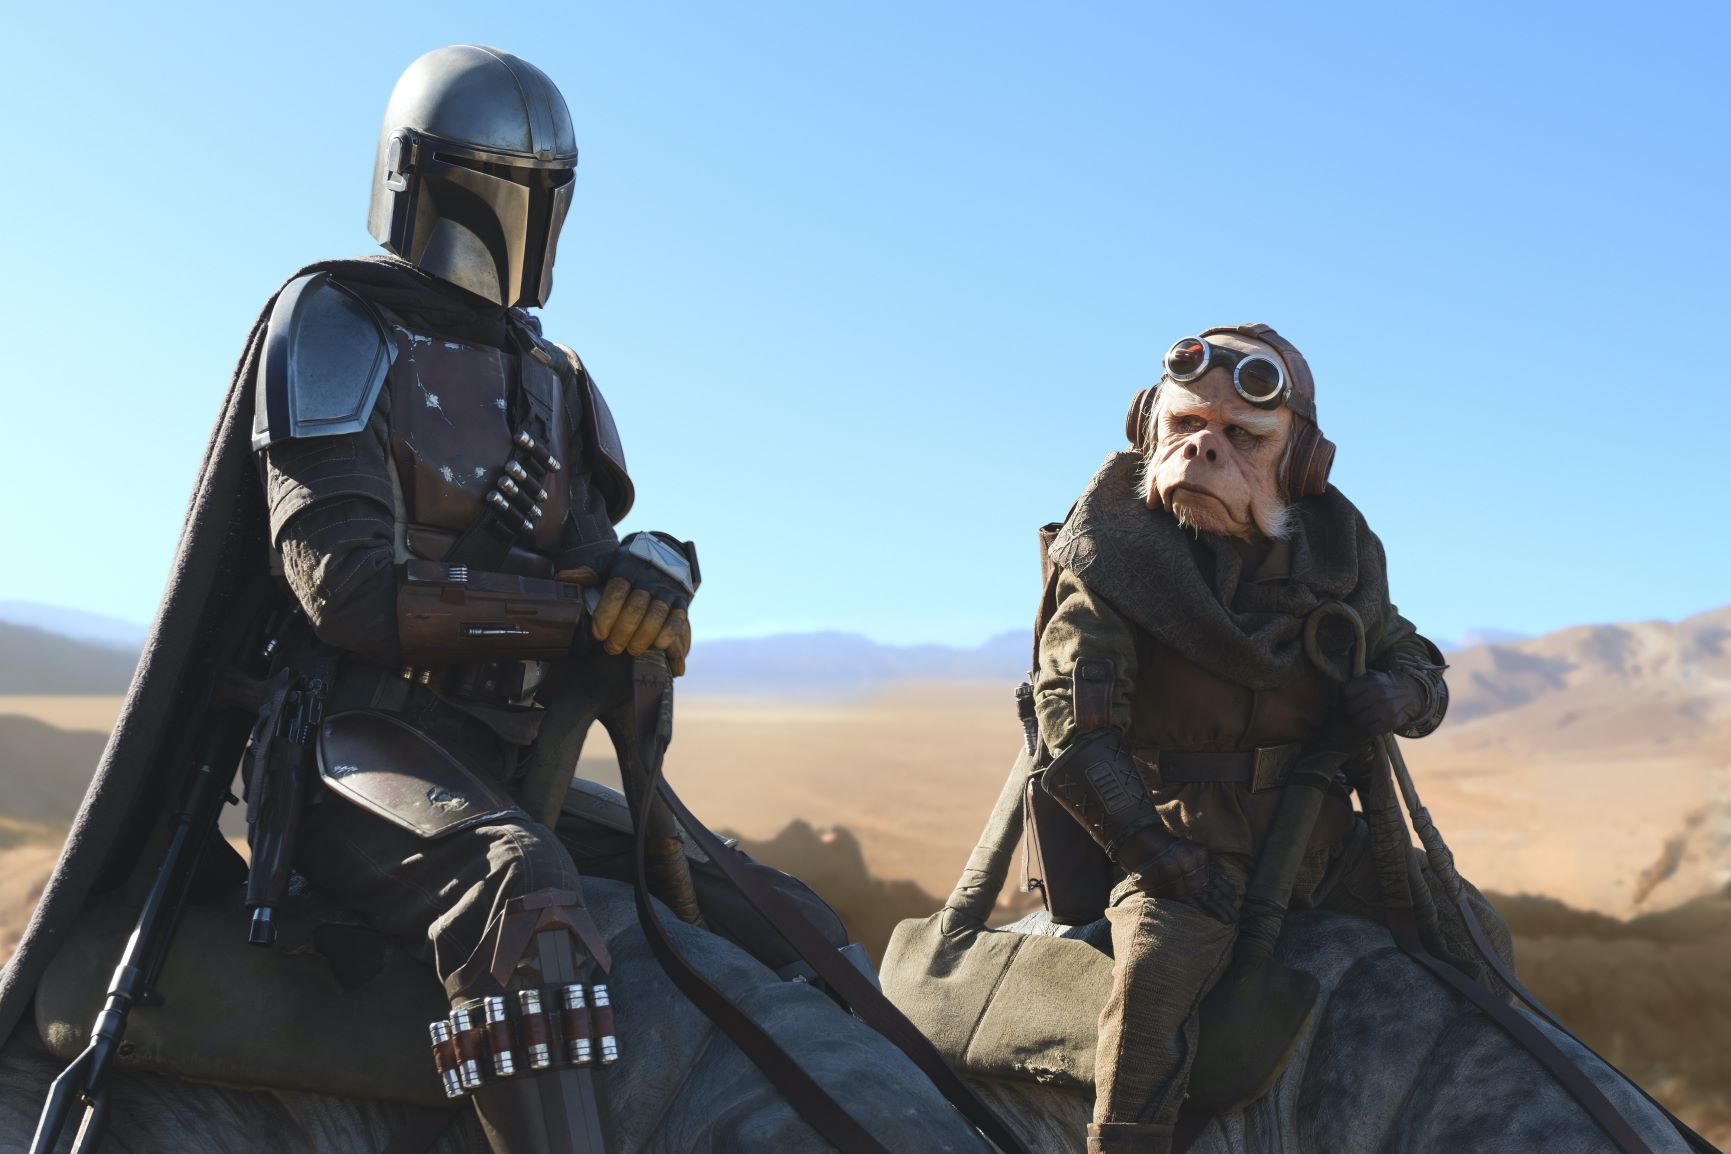 The Mandalorian re-sets the Star Wars series back to its roots